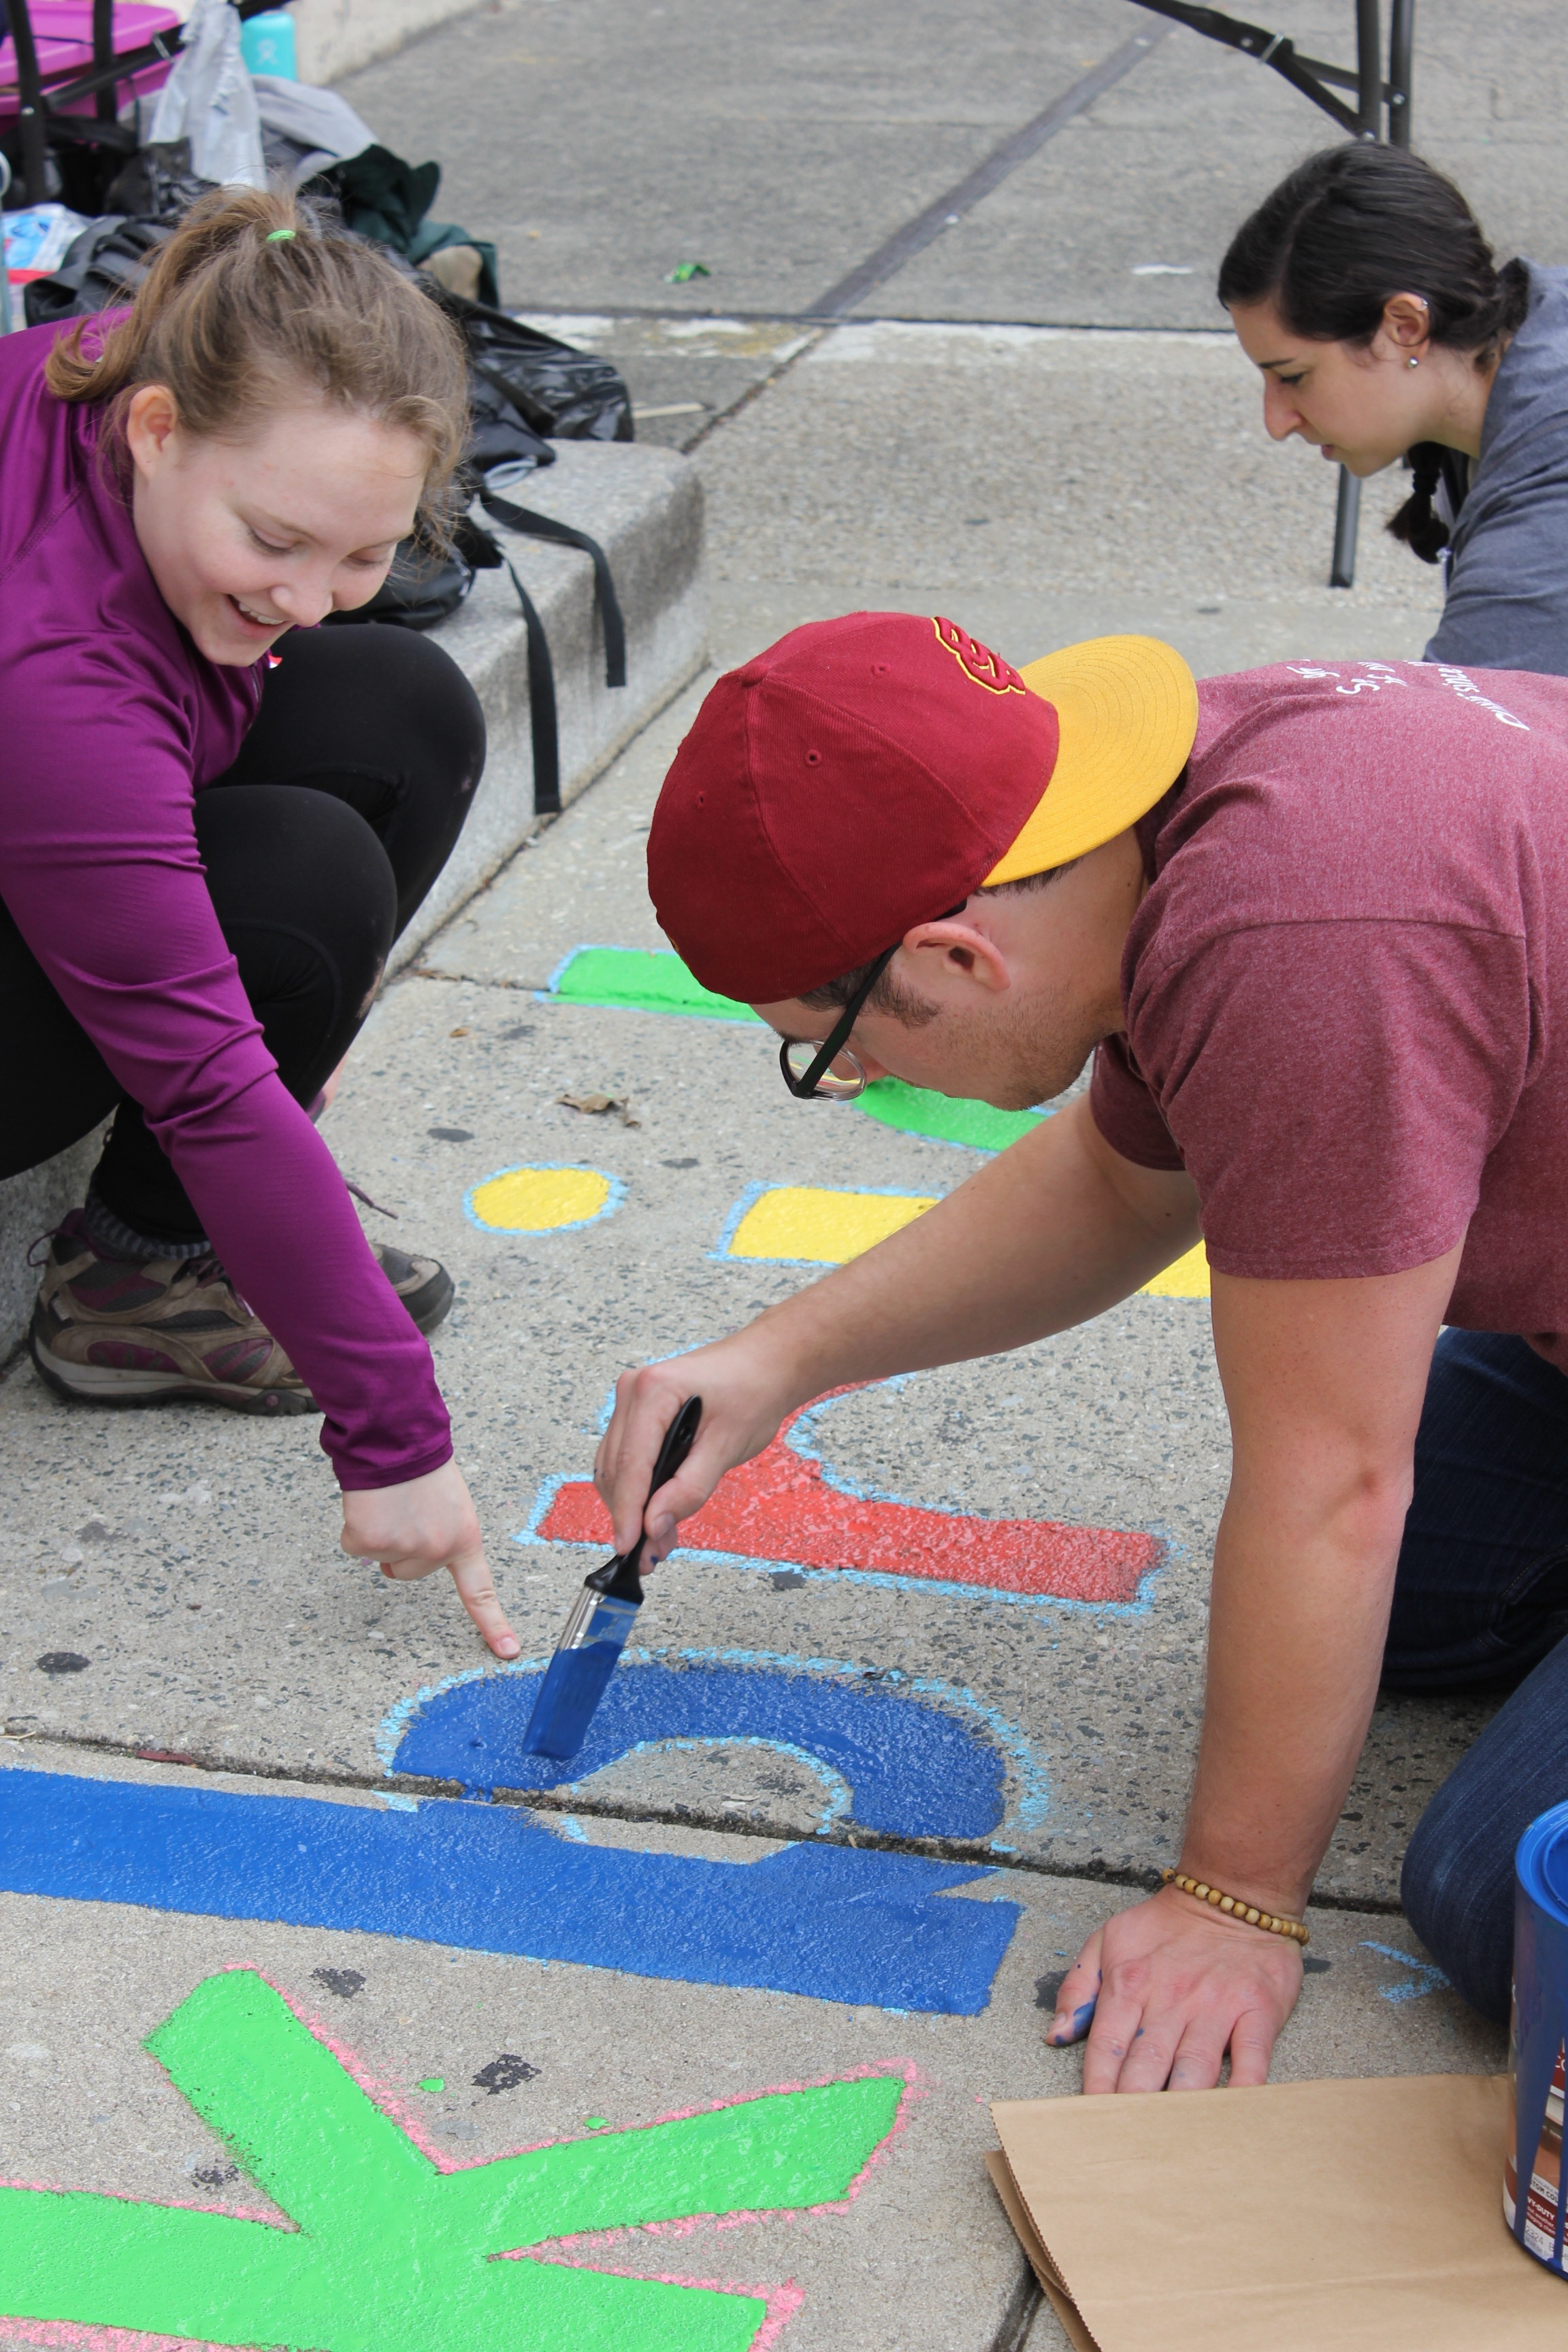 Two of our volunteers work to paint our partner school's name on the pavement